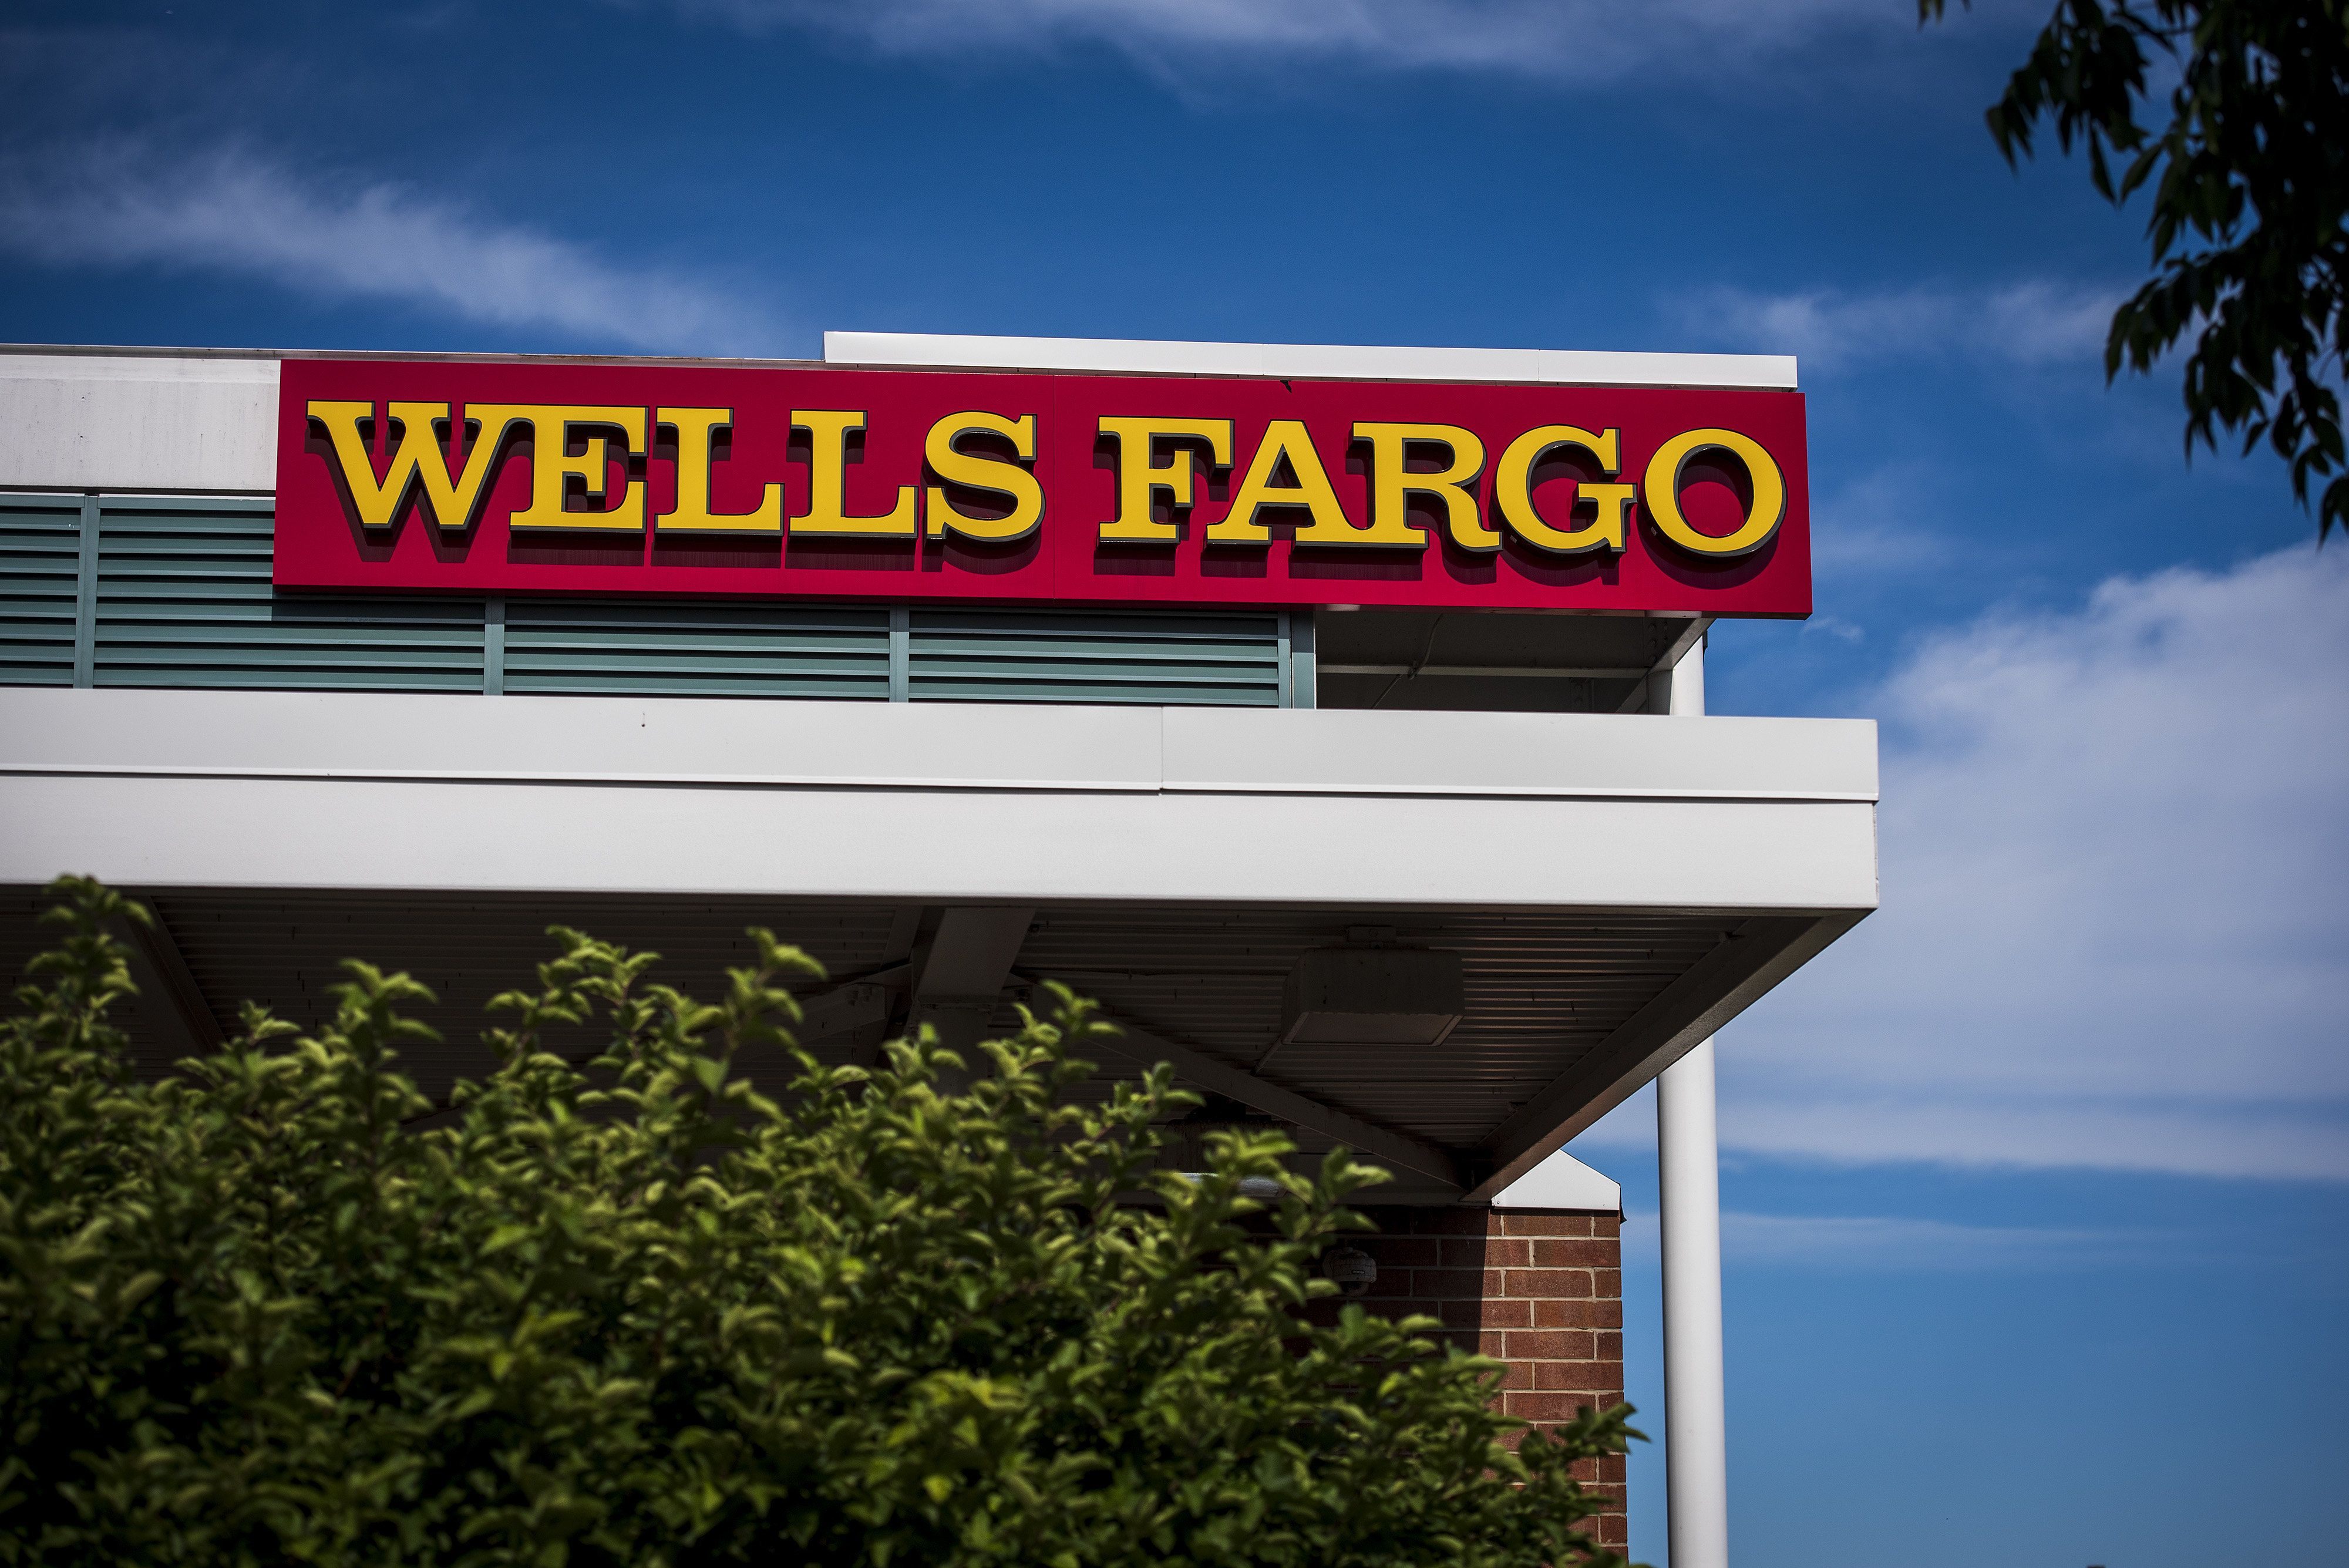 Wells Fargo To Pay $2.09 Billion Fine Over Decade-Old Mortgage